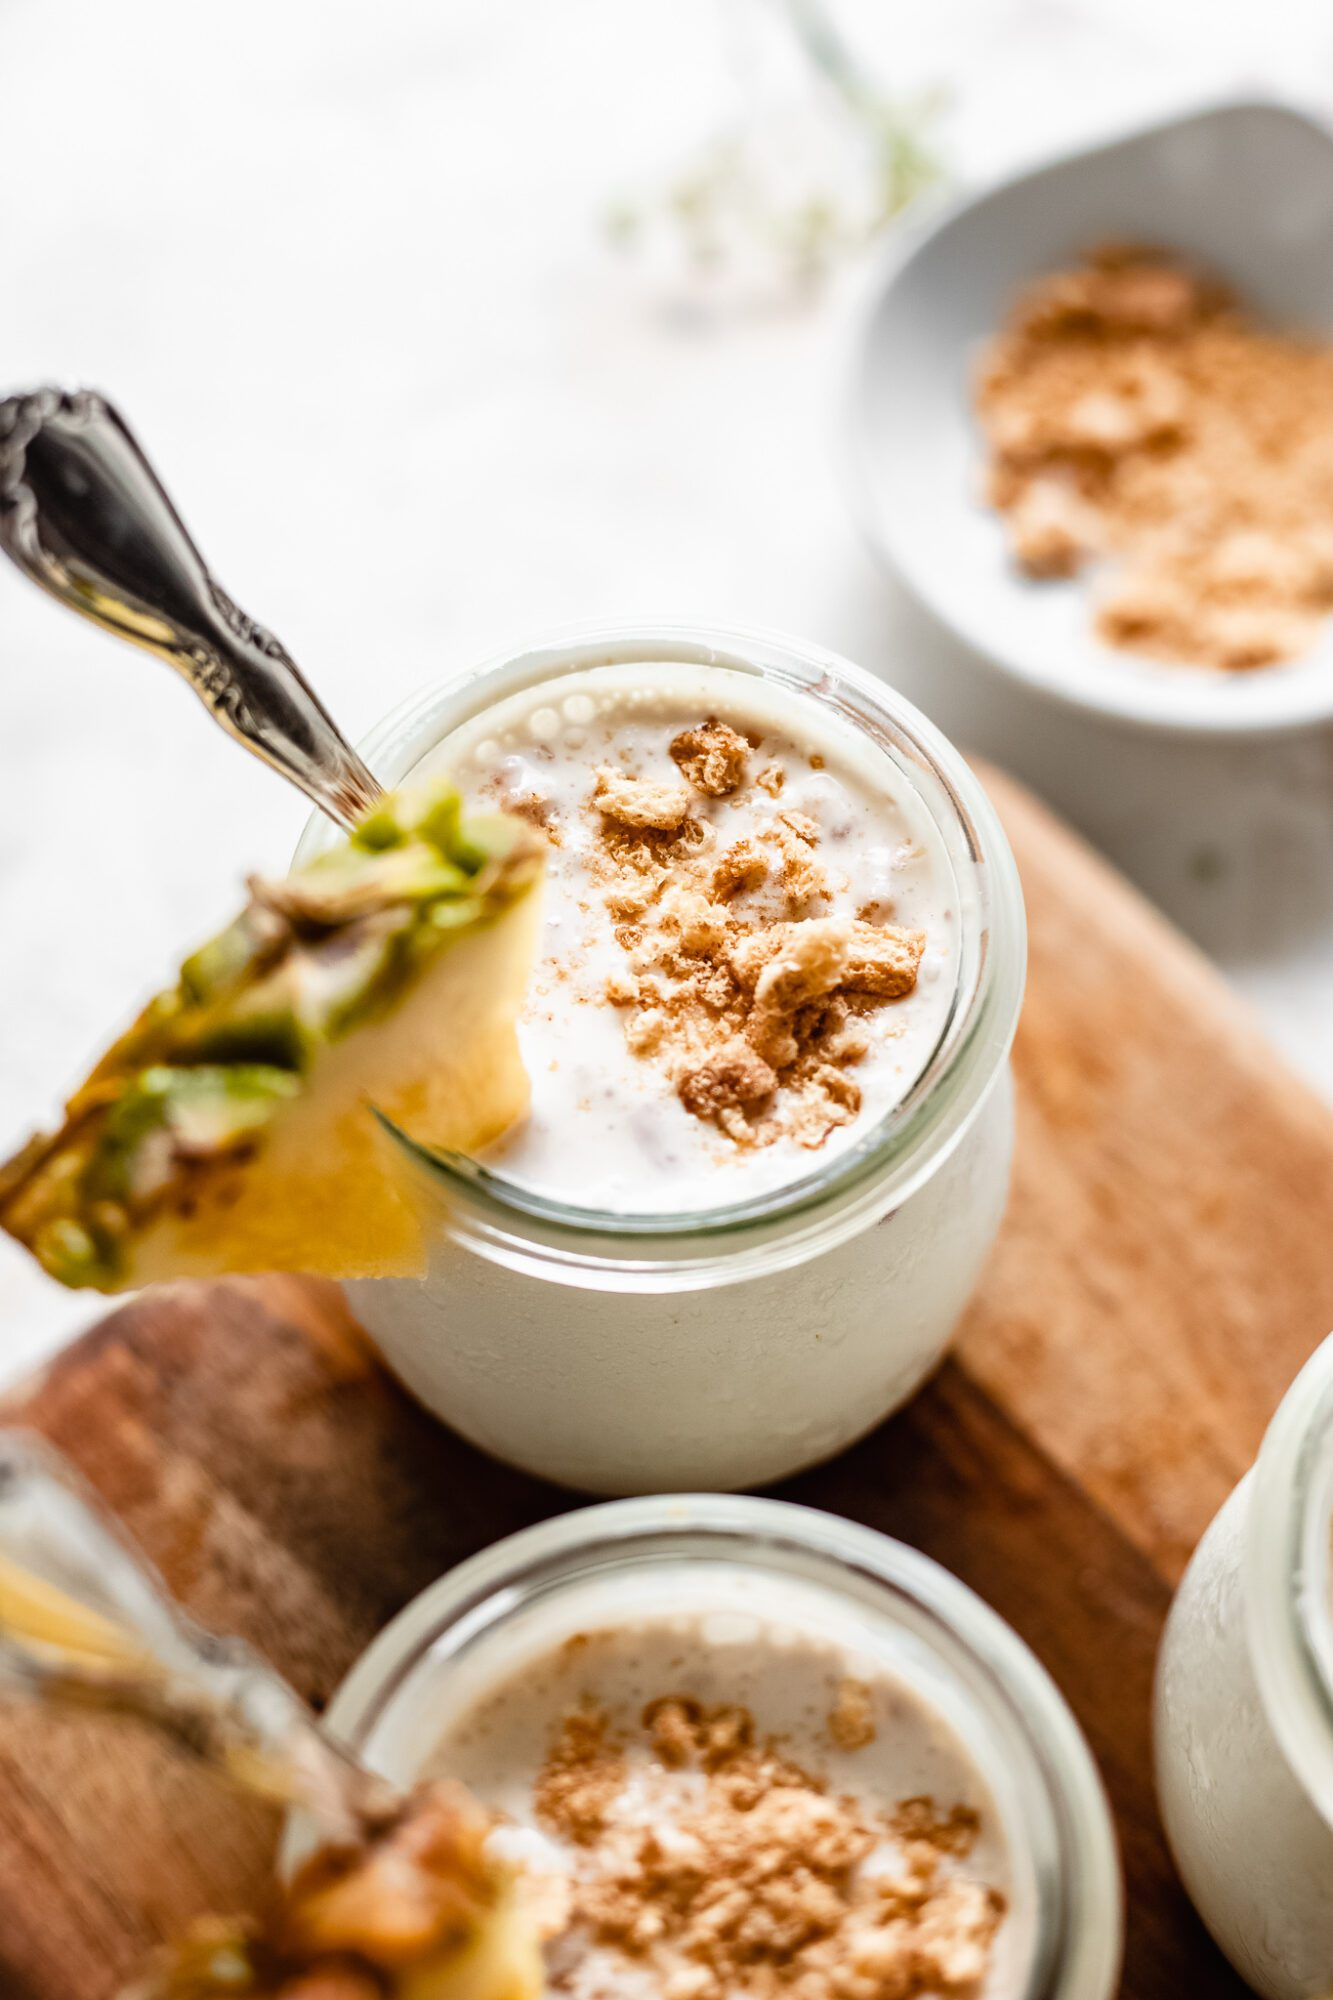 jars of pudding on wooden board